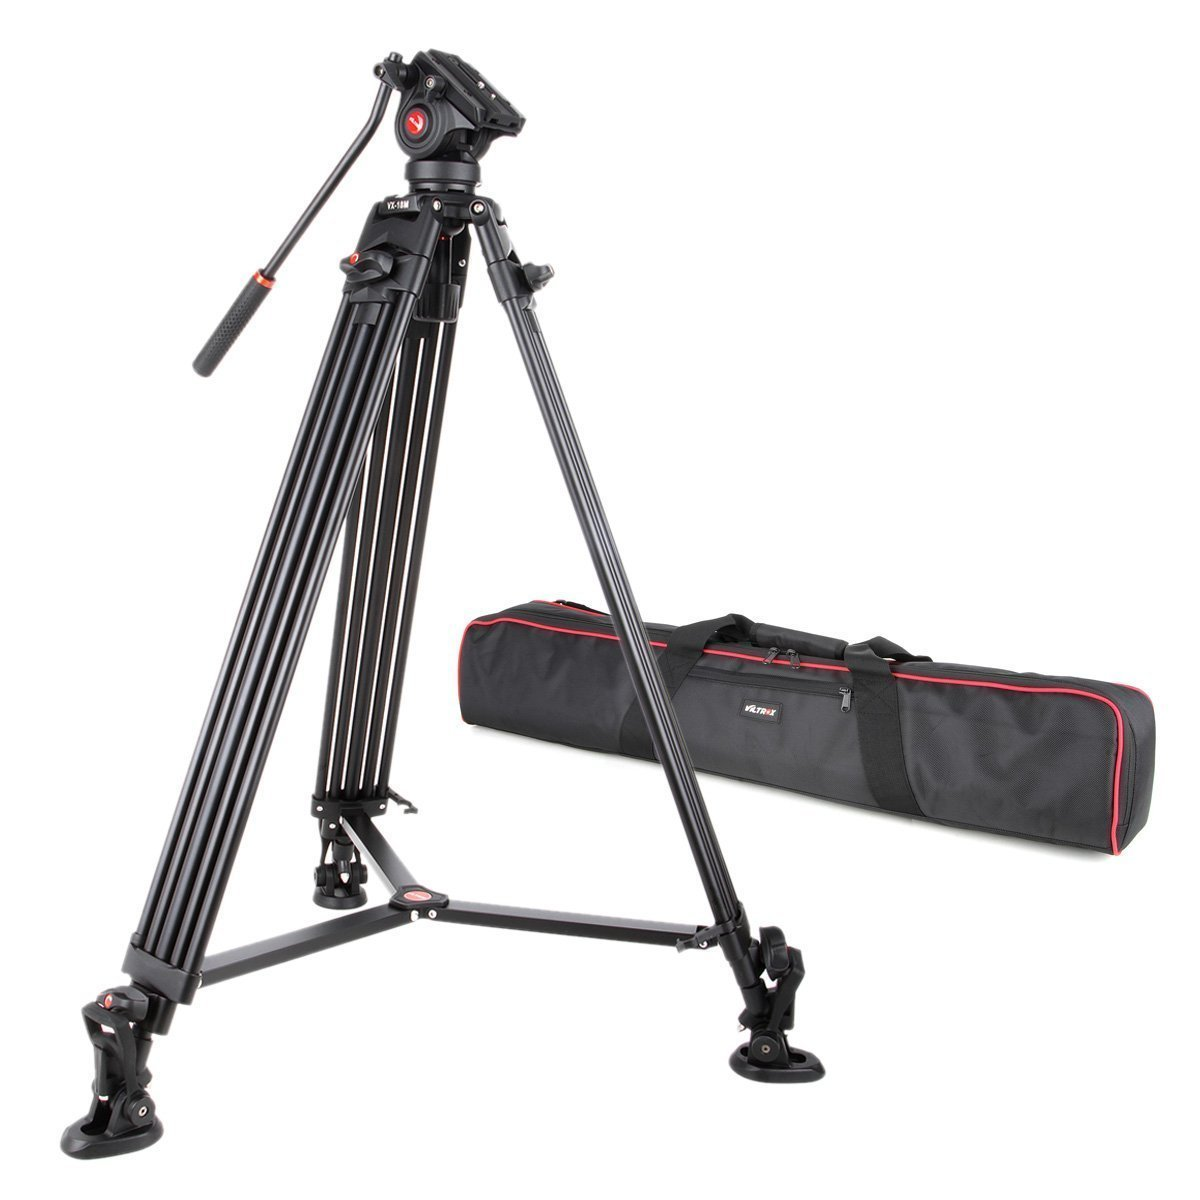 VILTROX VX-18M Professional Heavy Duty Video Camcorder Tripod with Fluid Drag Head and quick release plate, 74'' inch,Max loading 10KG, with Carrying bag,Horseshoe Shaped bracket